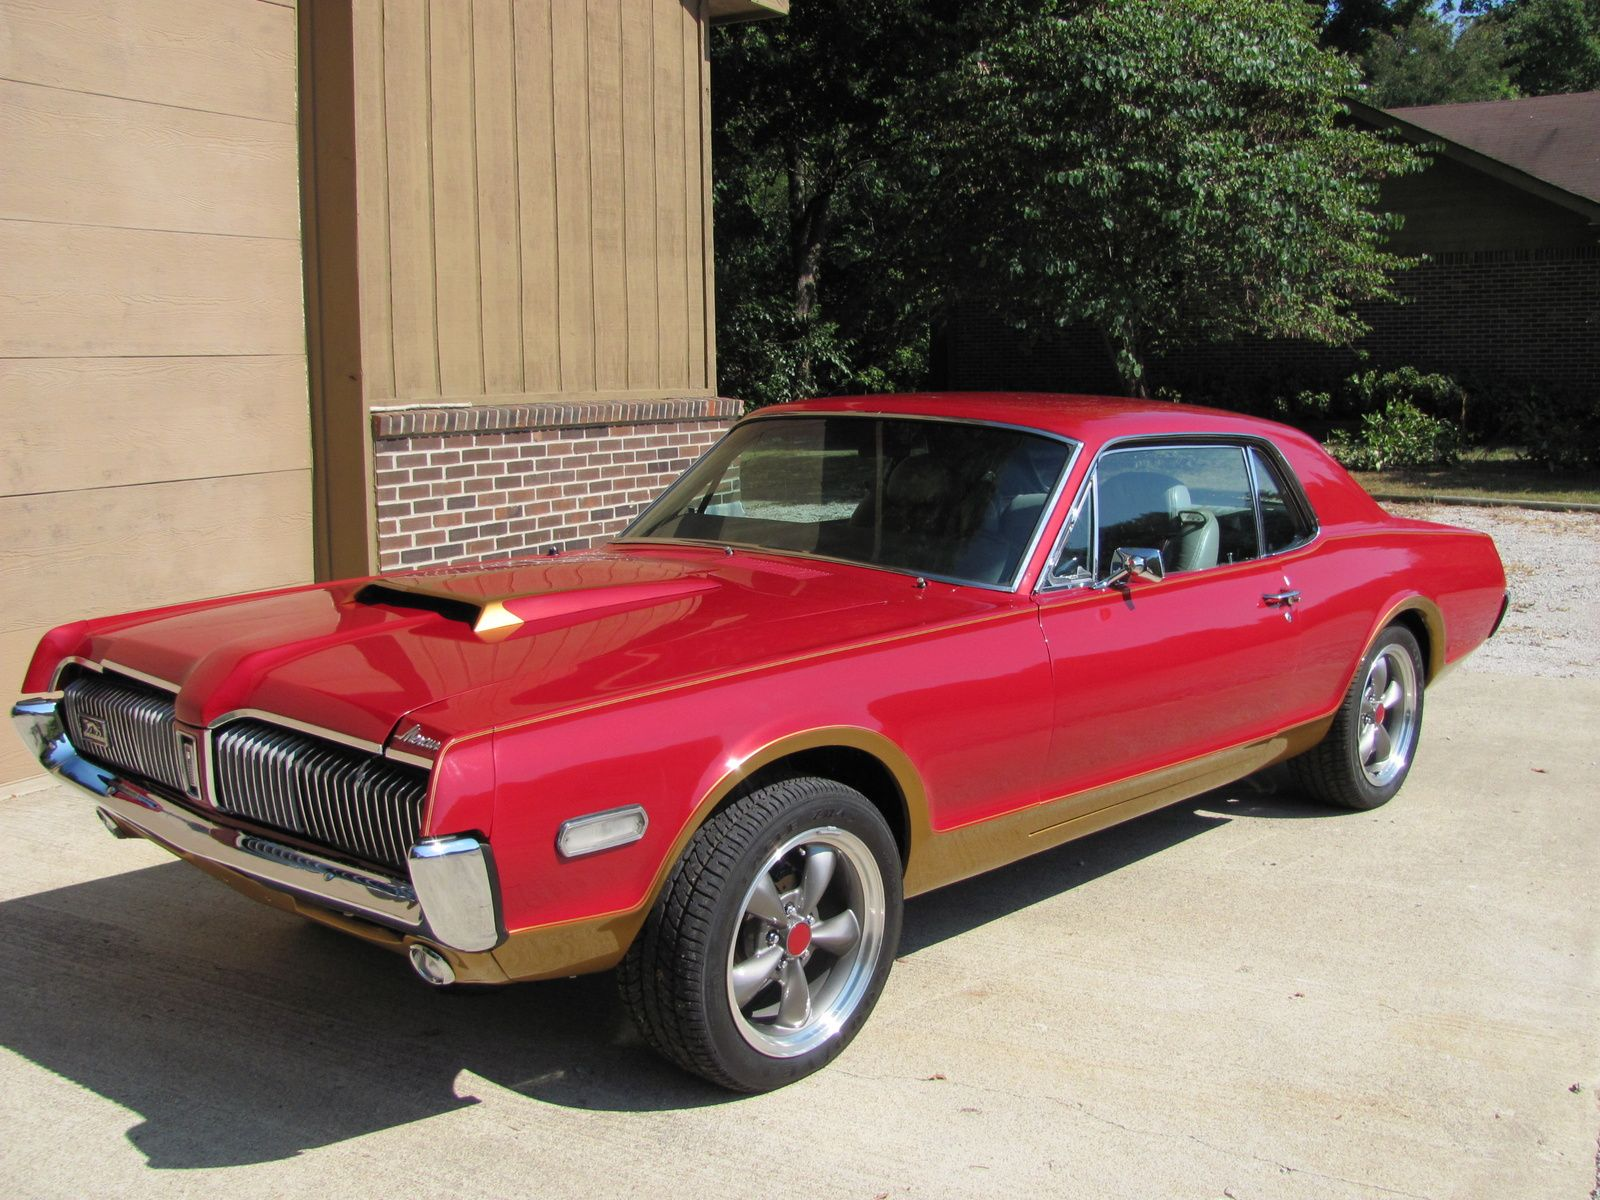 1972 mercury montego n code 429 restomod motorcycle custom - 1970 Mercury Cougar Featuring A 351 Cleveland Engine Probably Only Firing On 6 Cylinders And In Desperate Need Of A Brea Pinteres